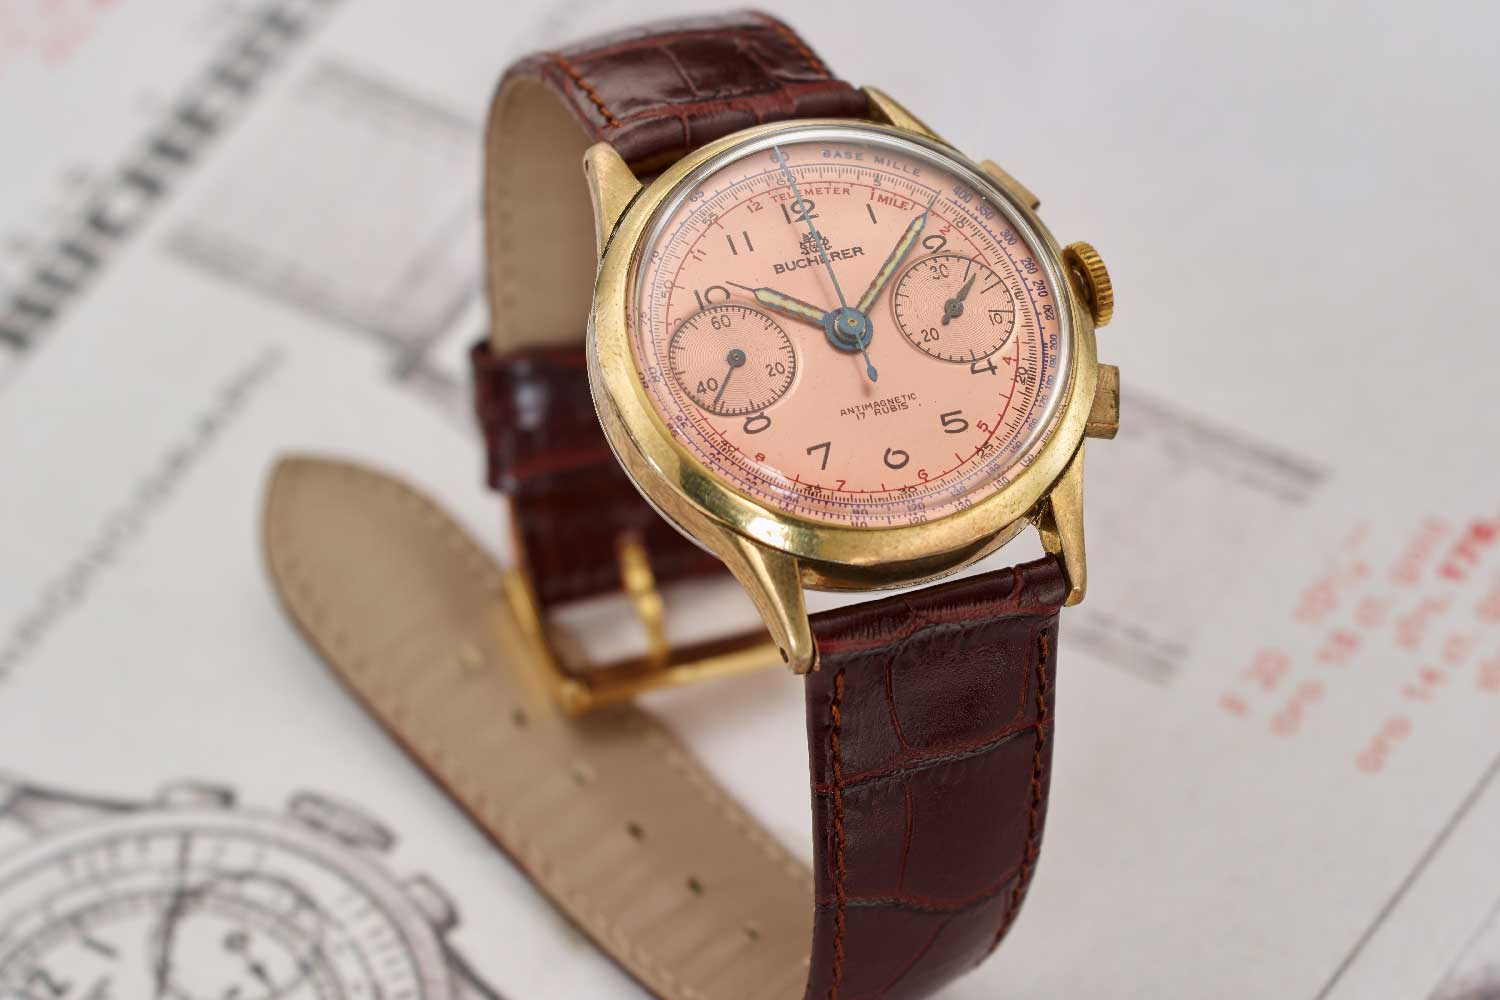 The BiCompax chronograph with its salmon coloured dial and gold case was developed at the end of the 1940s and was made available for sale around 1950. This Chronograph was the precursor to the modern wristwatch and an inspiration for the new Heritage BiCompax Annual.